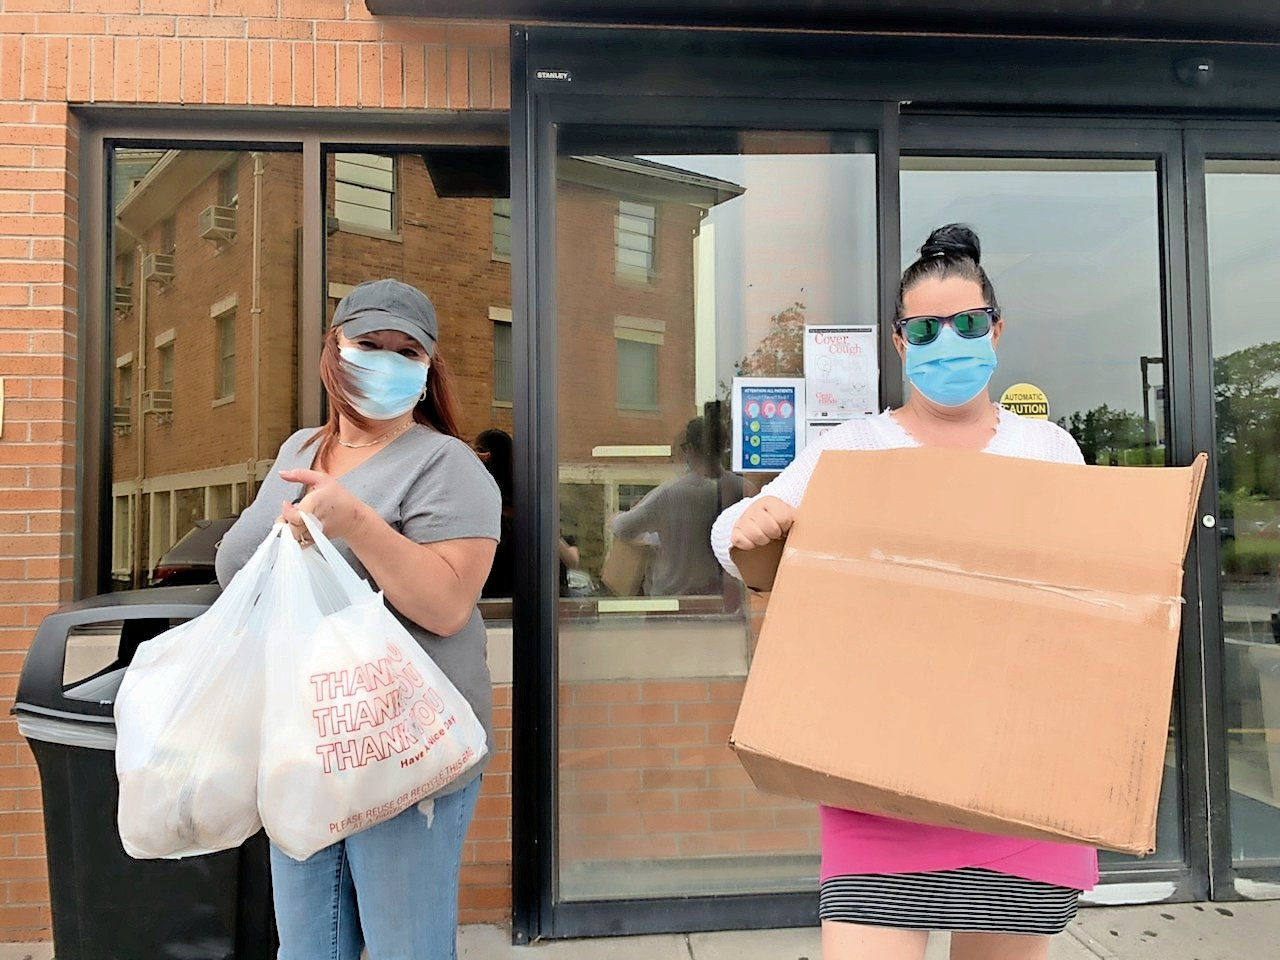 Last spring, Gina Caggiano of North Village Tavern, near right, and Wettstein picked up donations to be delivered to essential workers.